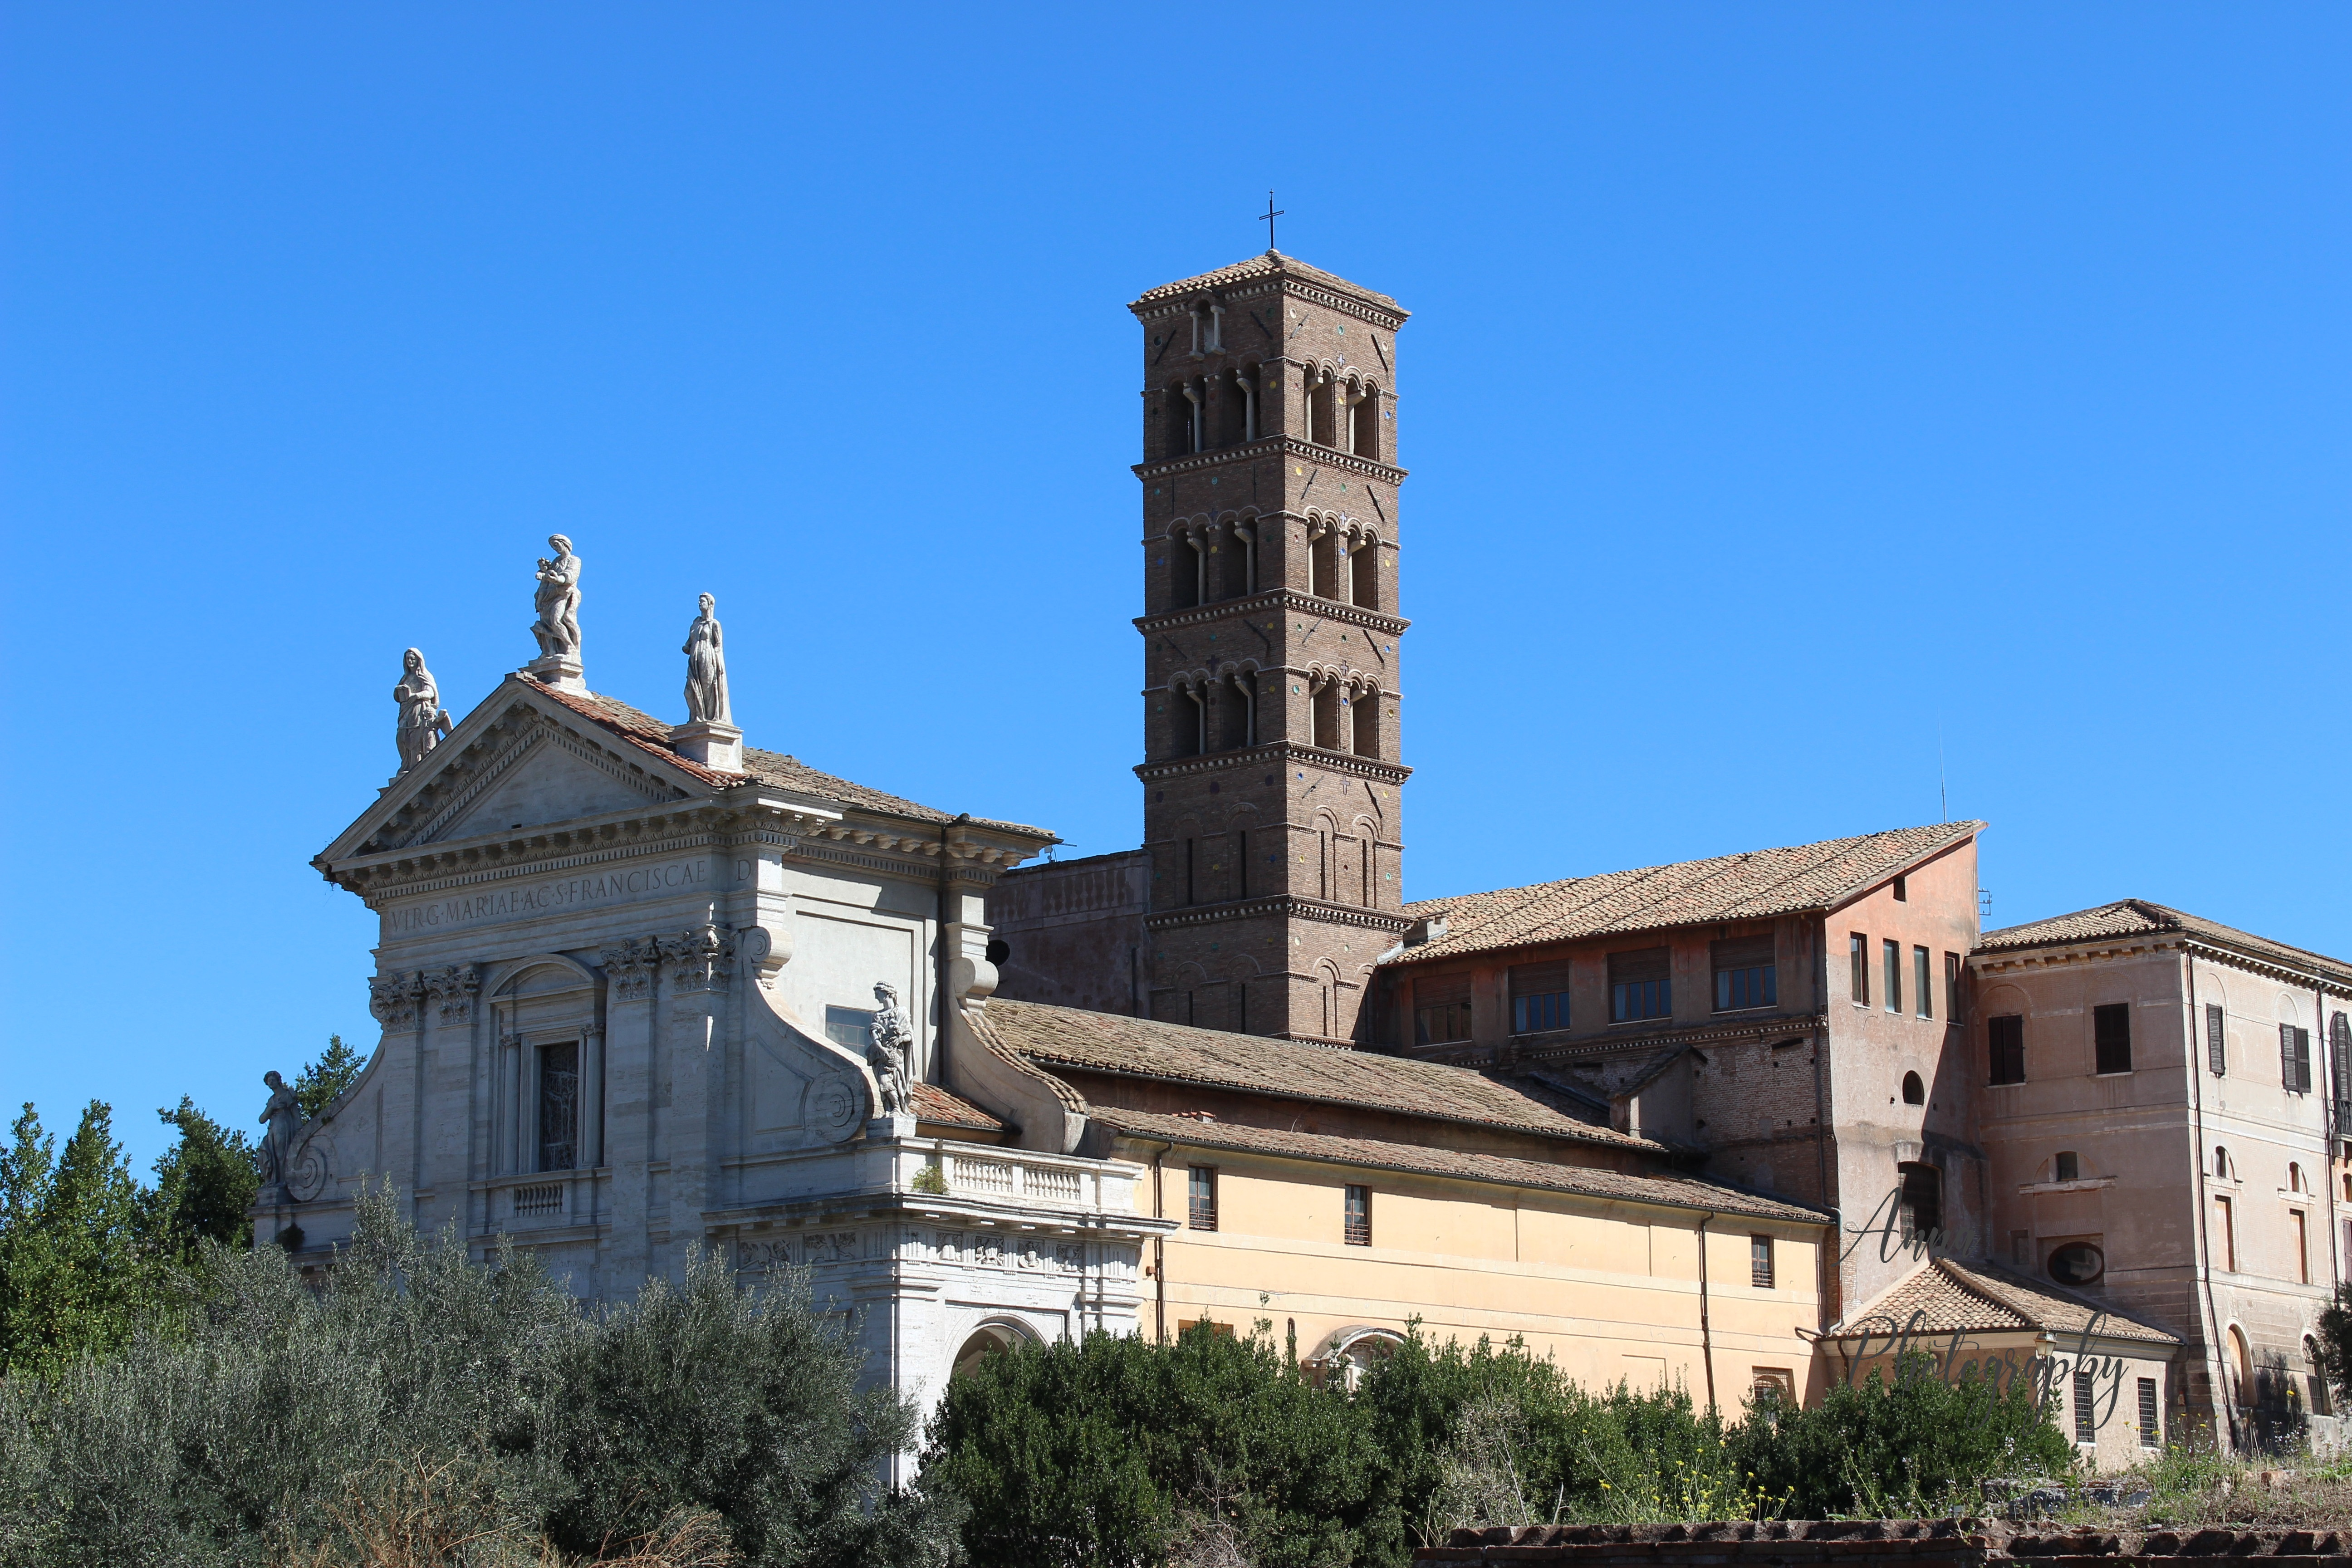 Church Rome example image 1